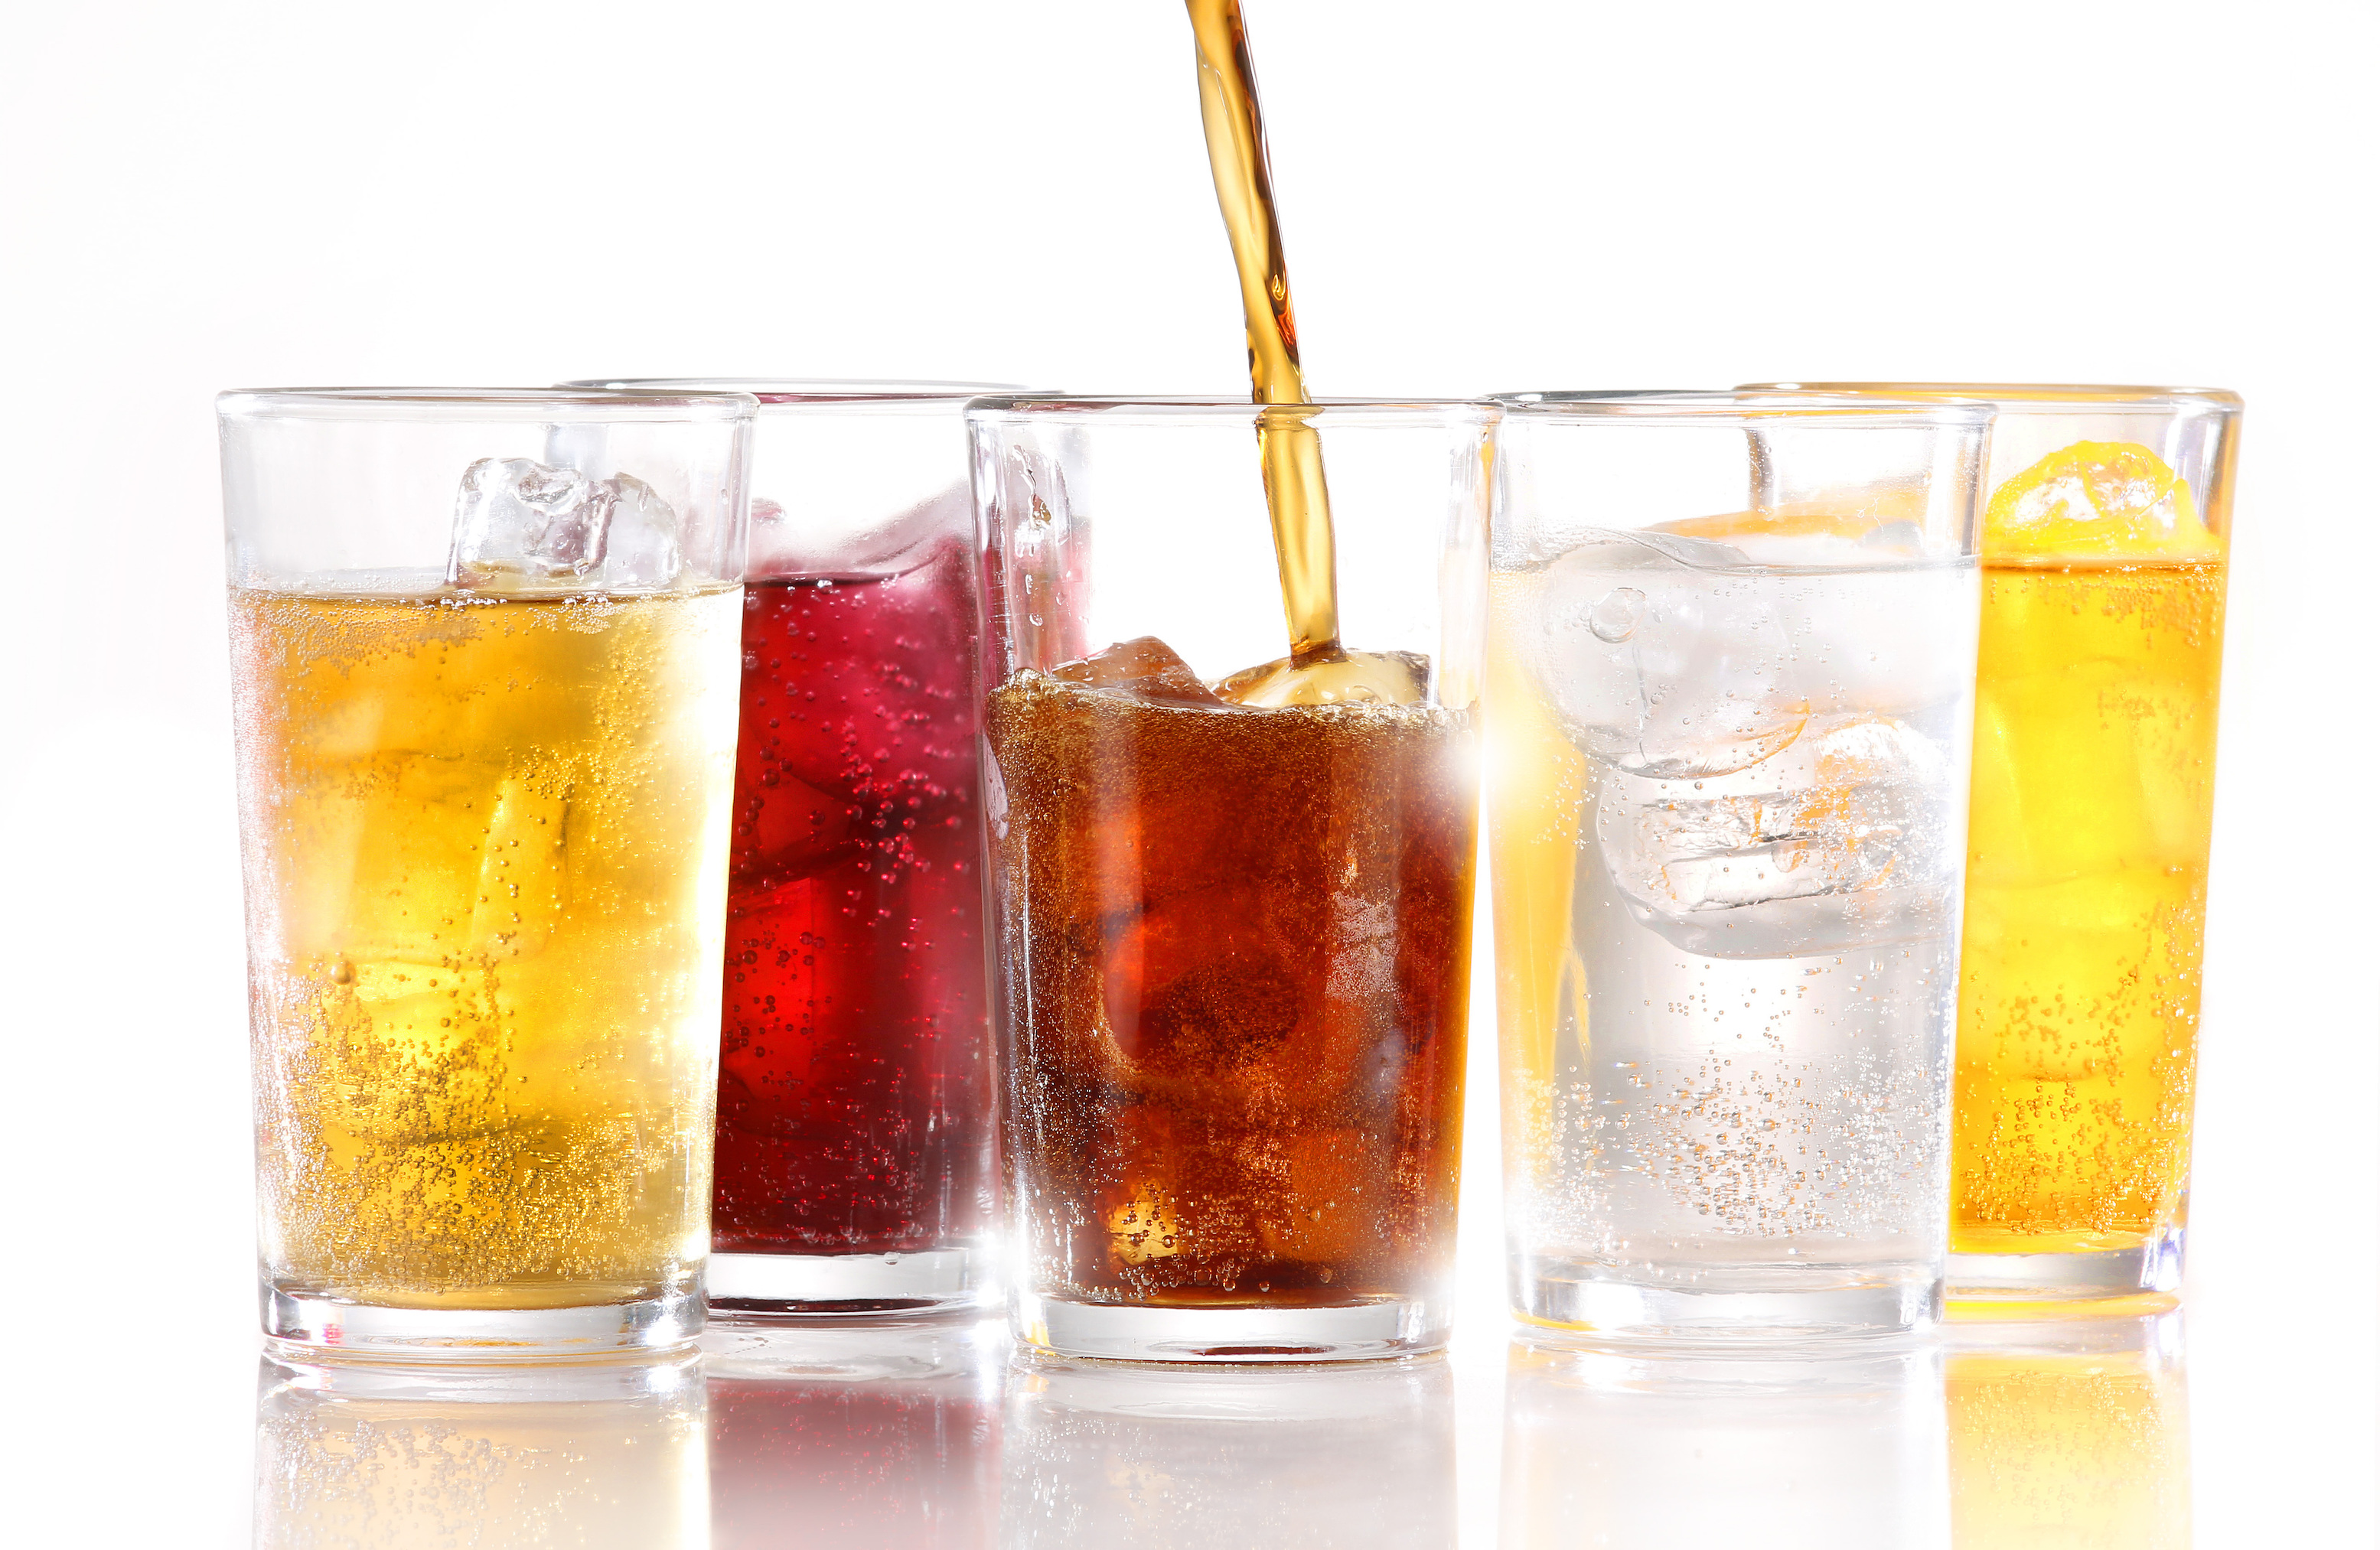 Drinking sugary drinks while eating a high-protein meal may reduce energy, alter food preferences, and cause your body to store more fat.